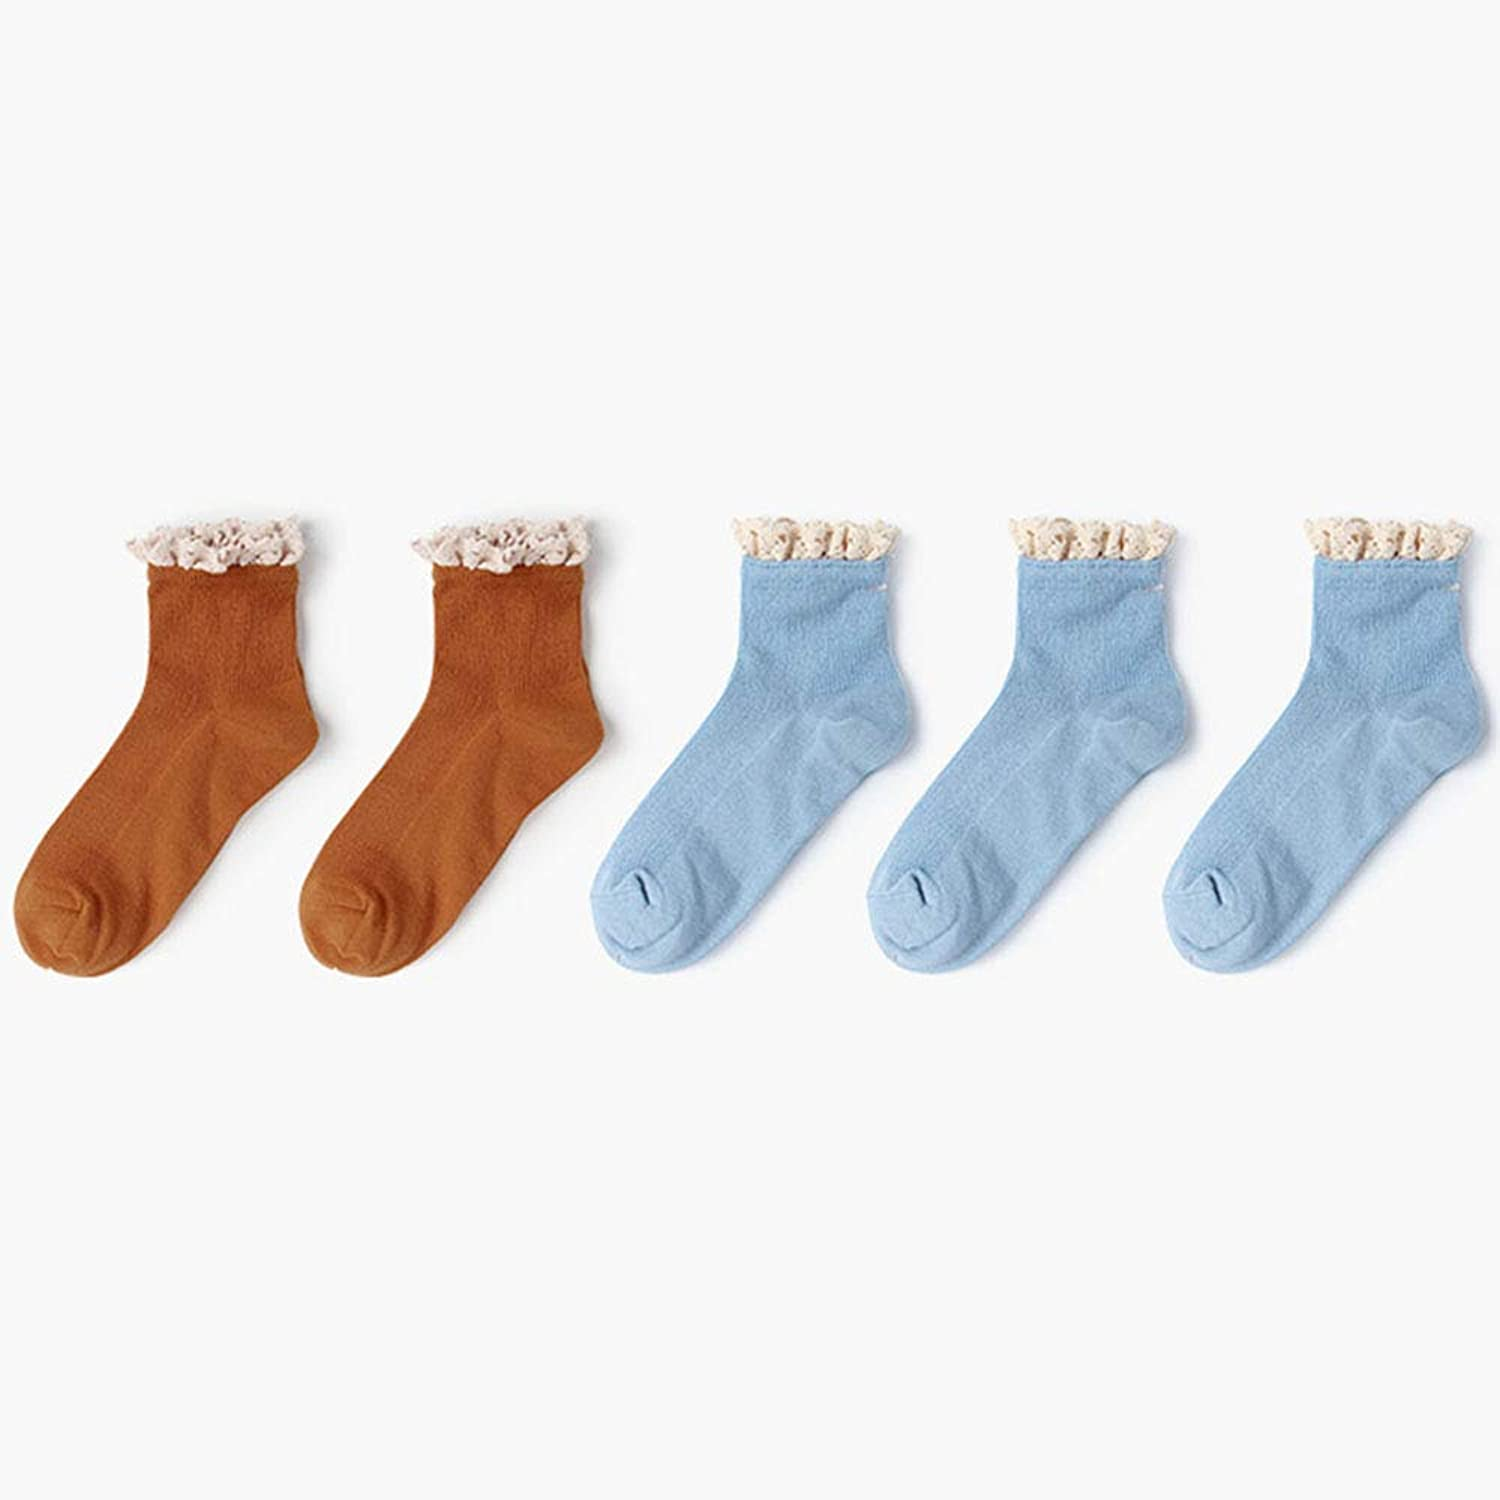 Socks 5 Pairs of Women's Vintage Lace Lace Socks Knit Sports Comfortable Sweet (color   C)